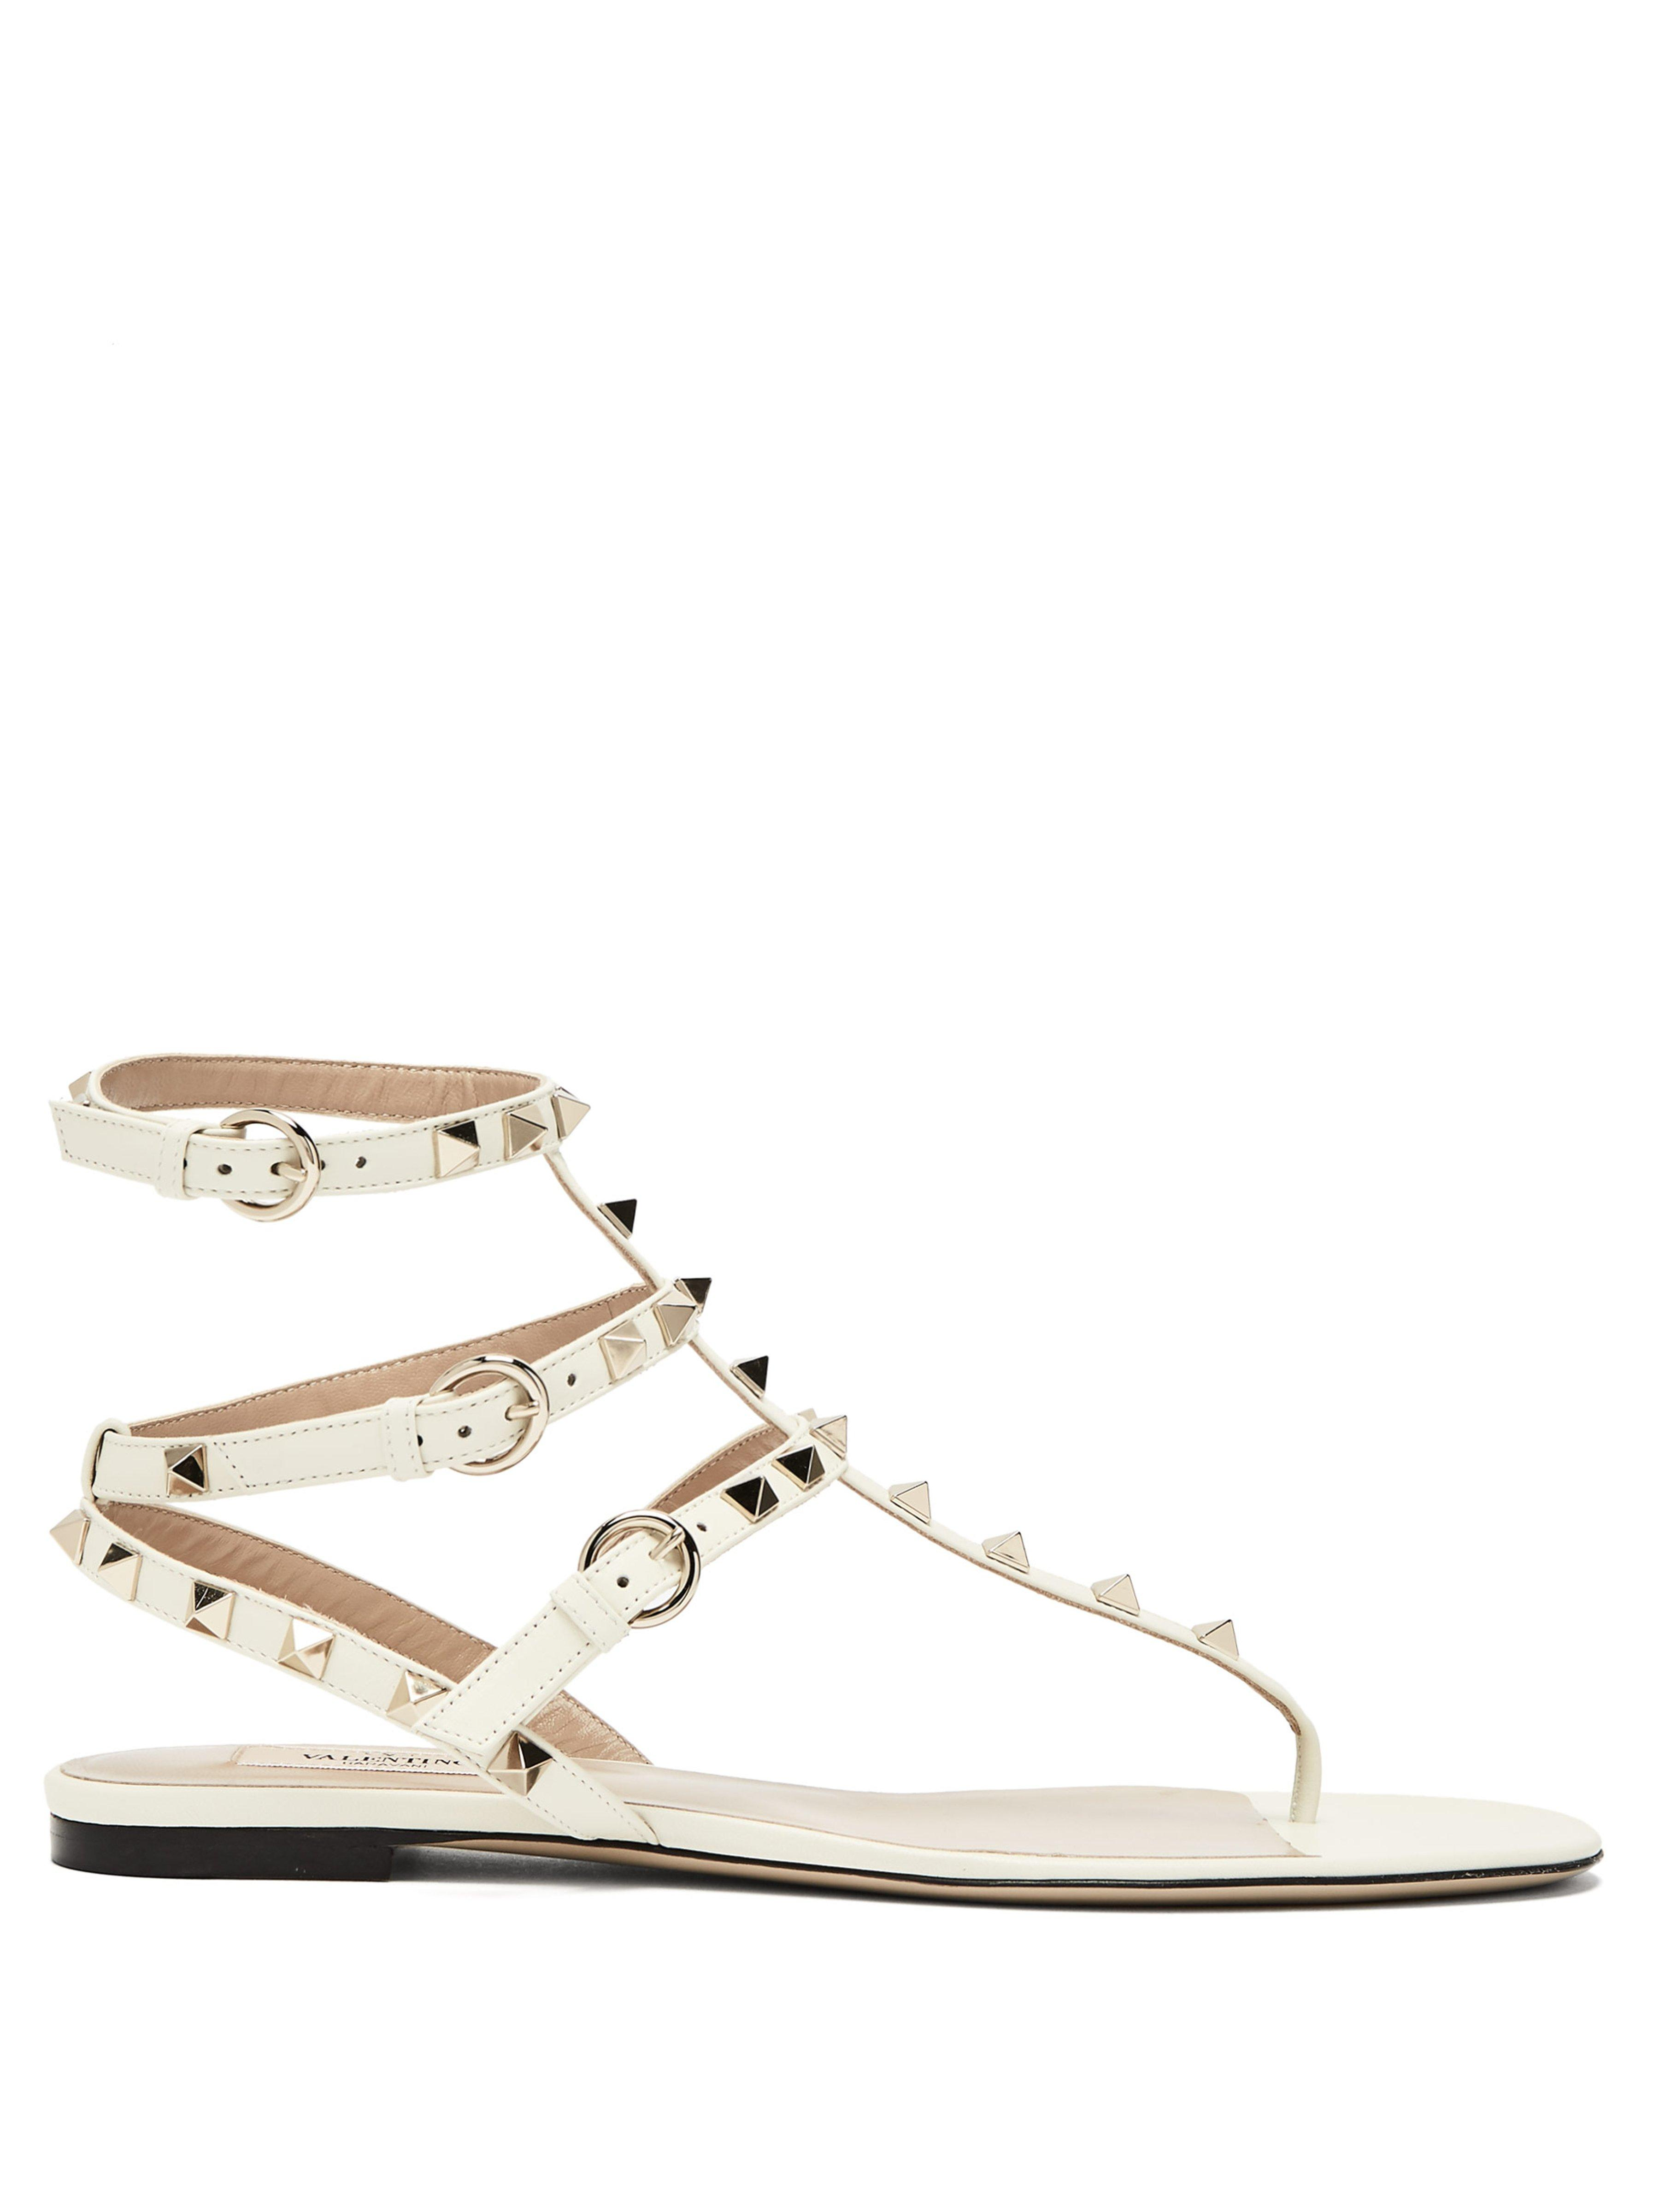 6e183aaabfe Valentino Rockstud Gladiator Leather Sandals in White - Lyst